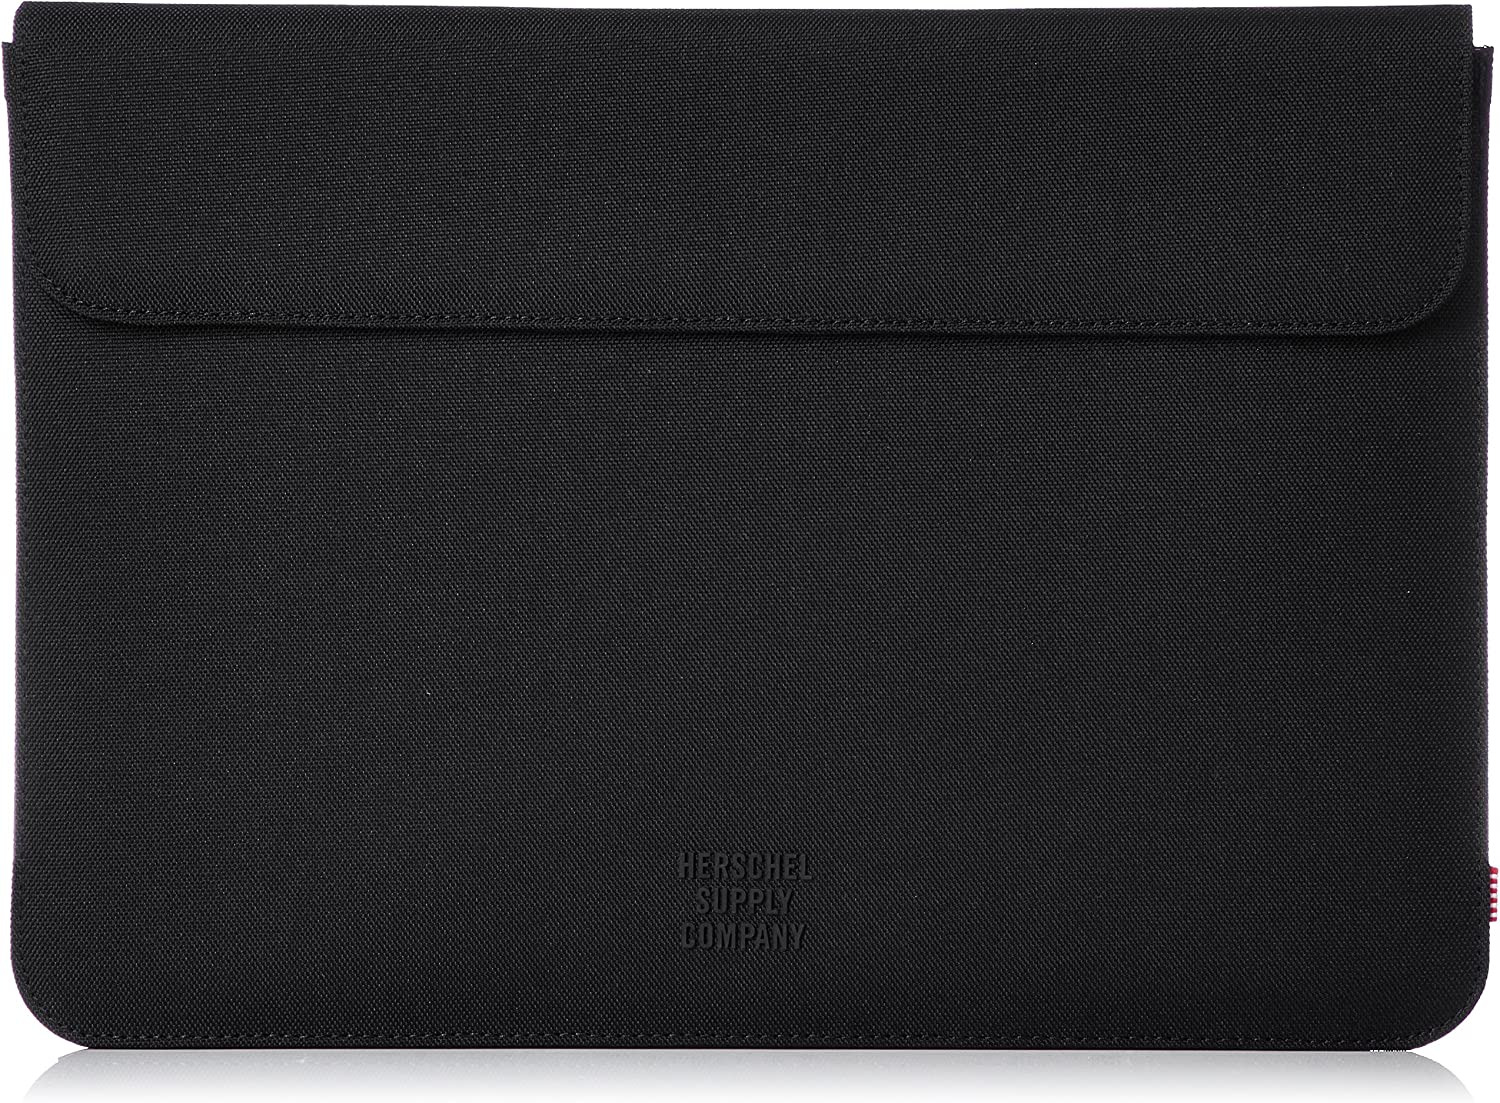 Herschel Spokane Sleeve for MacBook/iPad, black, 13-Inch